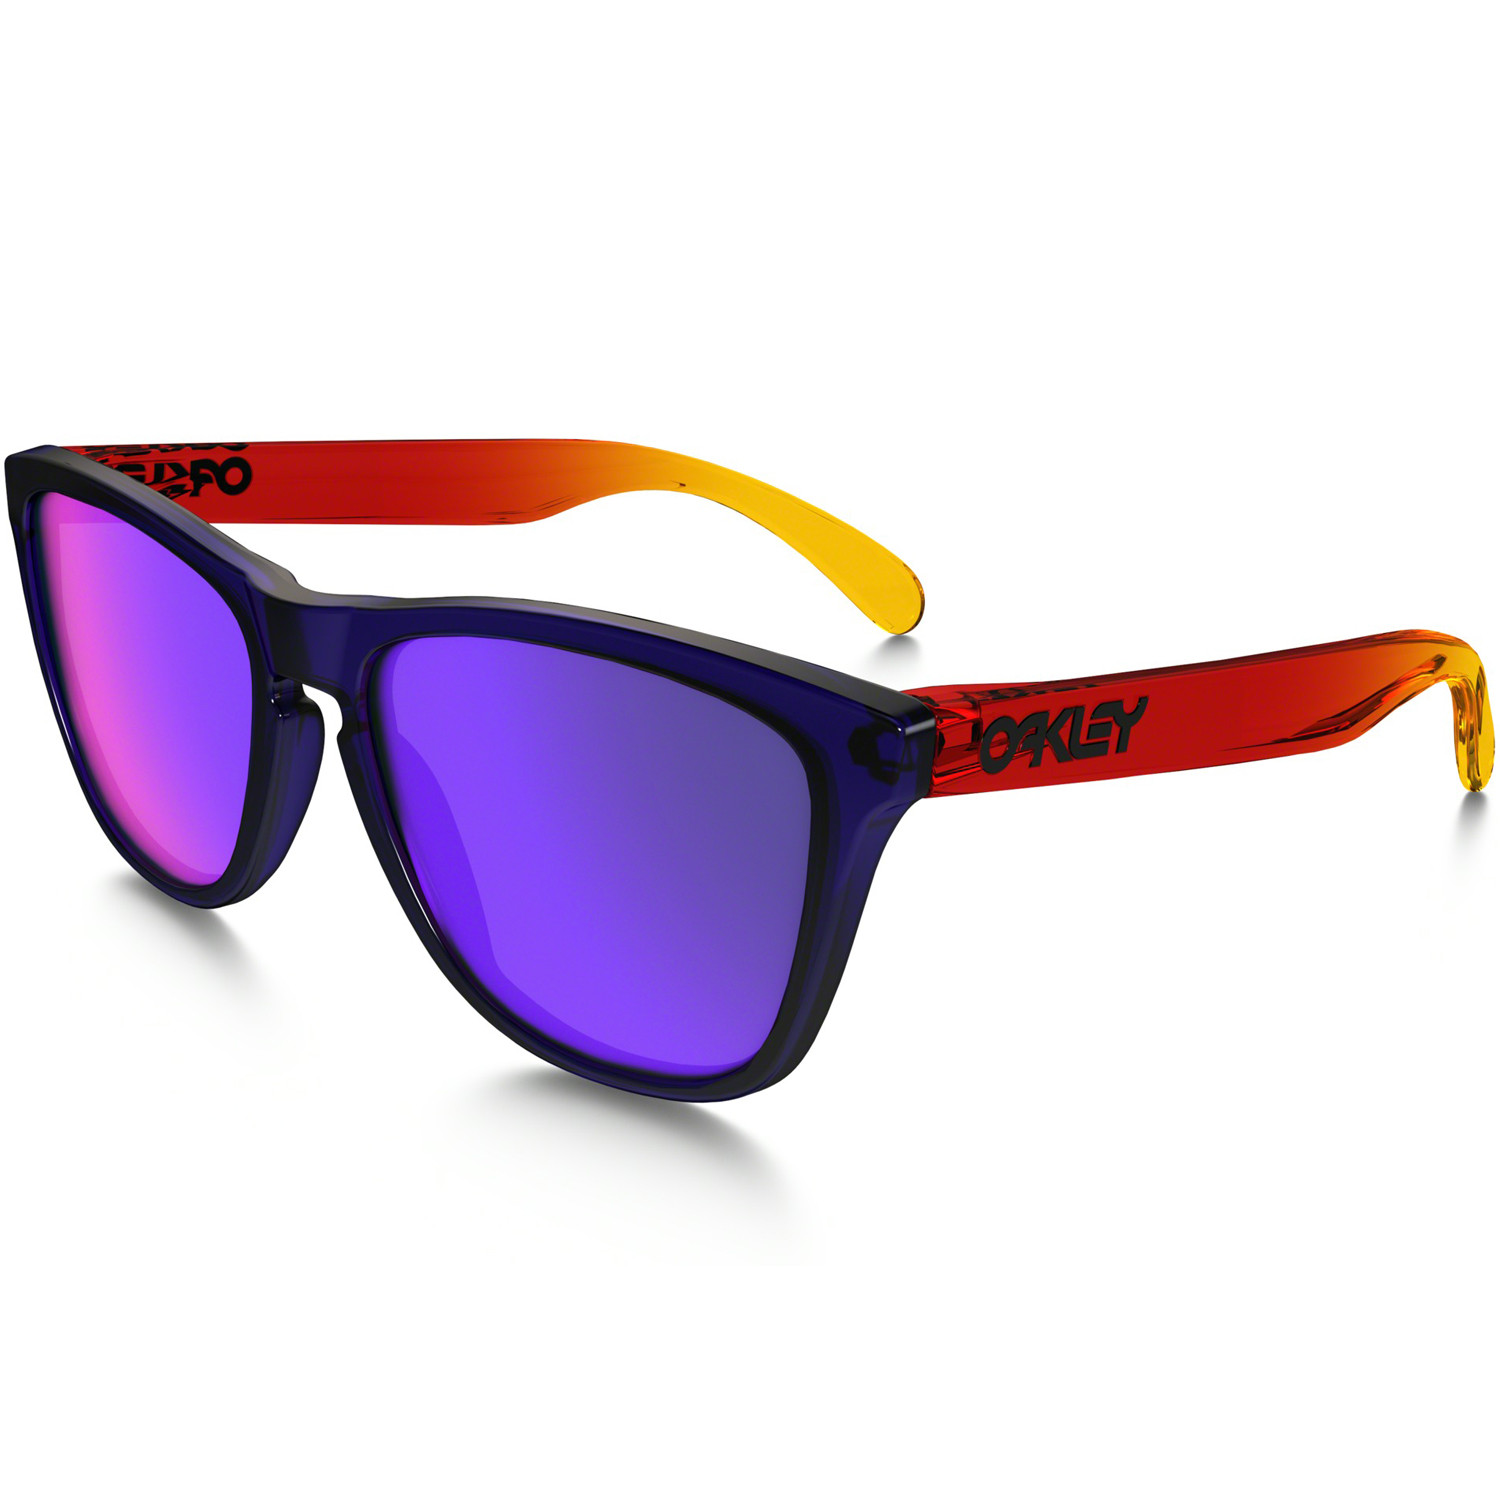 Óculos Oakley Frogskins Surf Collection Purple Red Lente Red Positive  Iridium fdd26df2d41fc